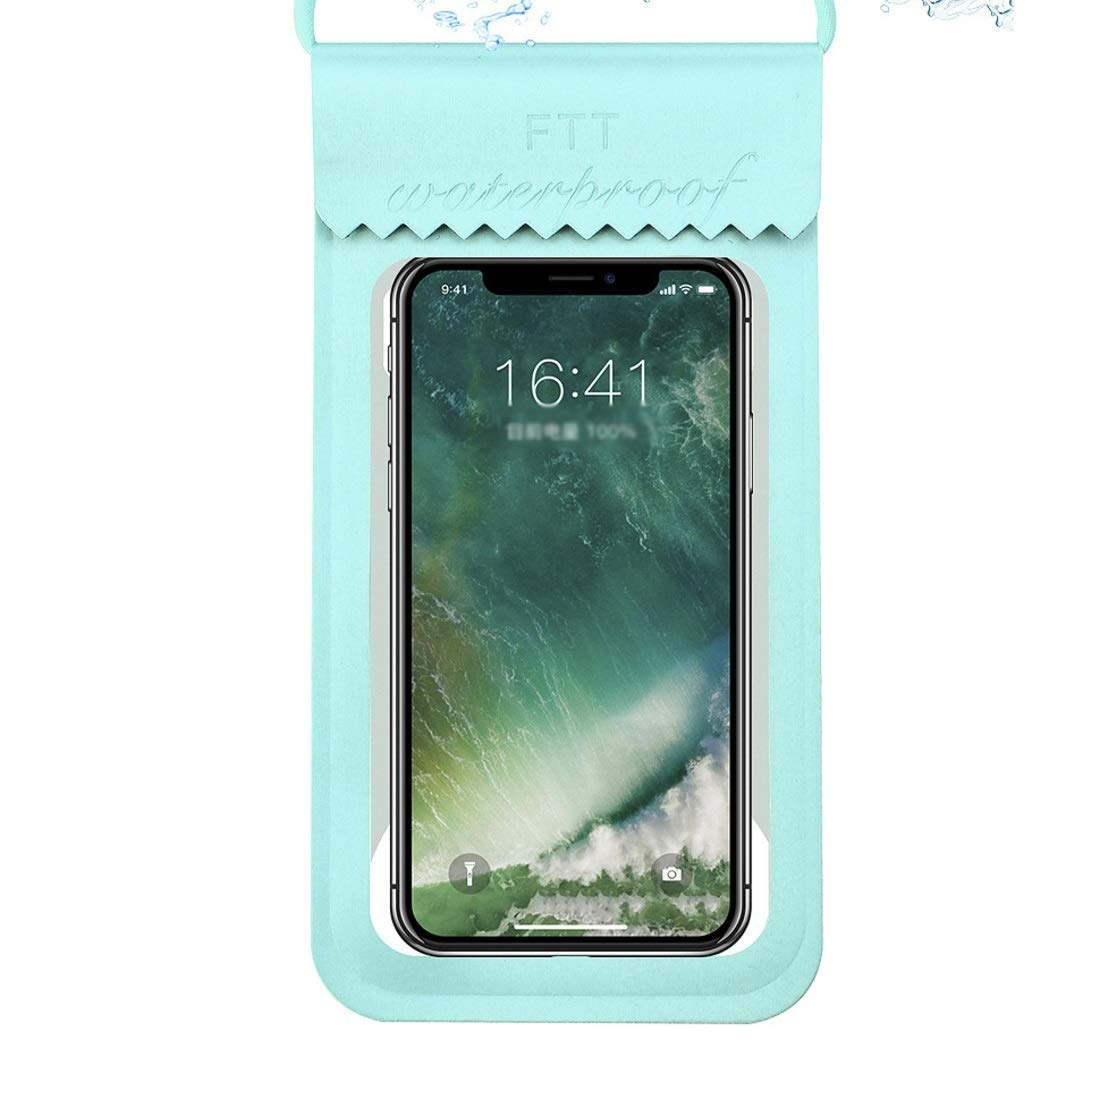 XIAMEND 10 Pieces Outdoor Mobile Phone Waterproof Bag Diving TPU Transparent Bag Swimming Touch Screen Mobile Phone Bag Universal Waterproof Case (Color : Green Size) by XIAMEND